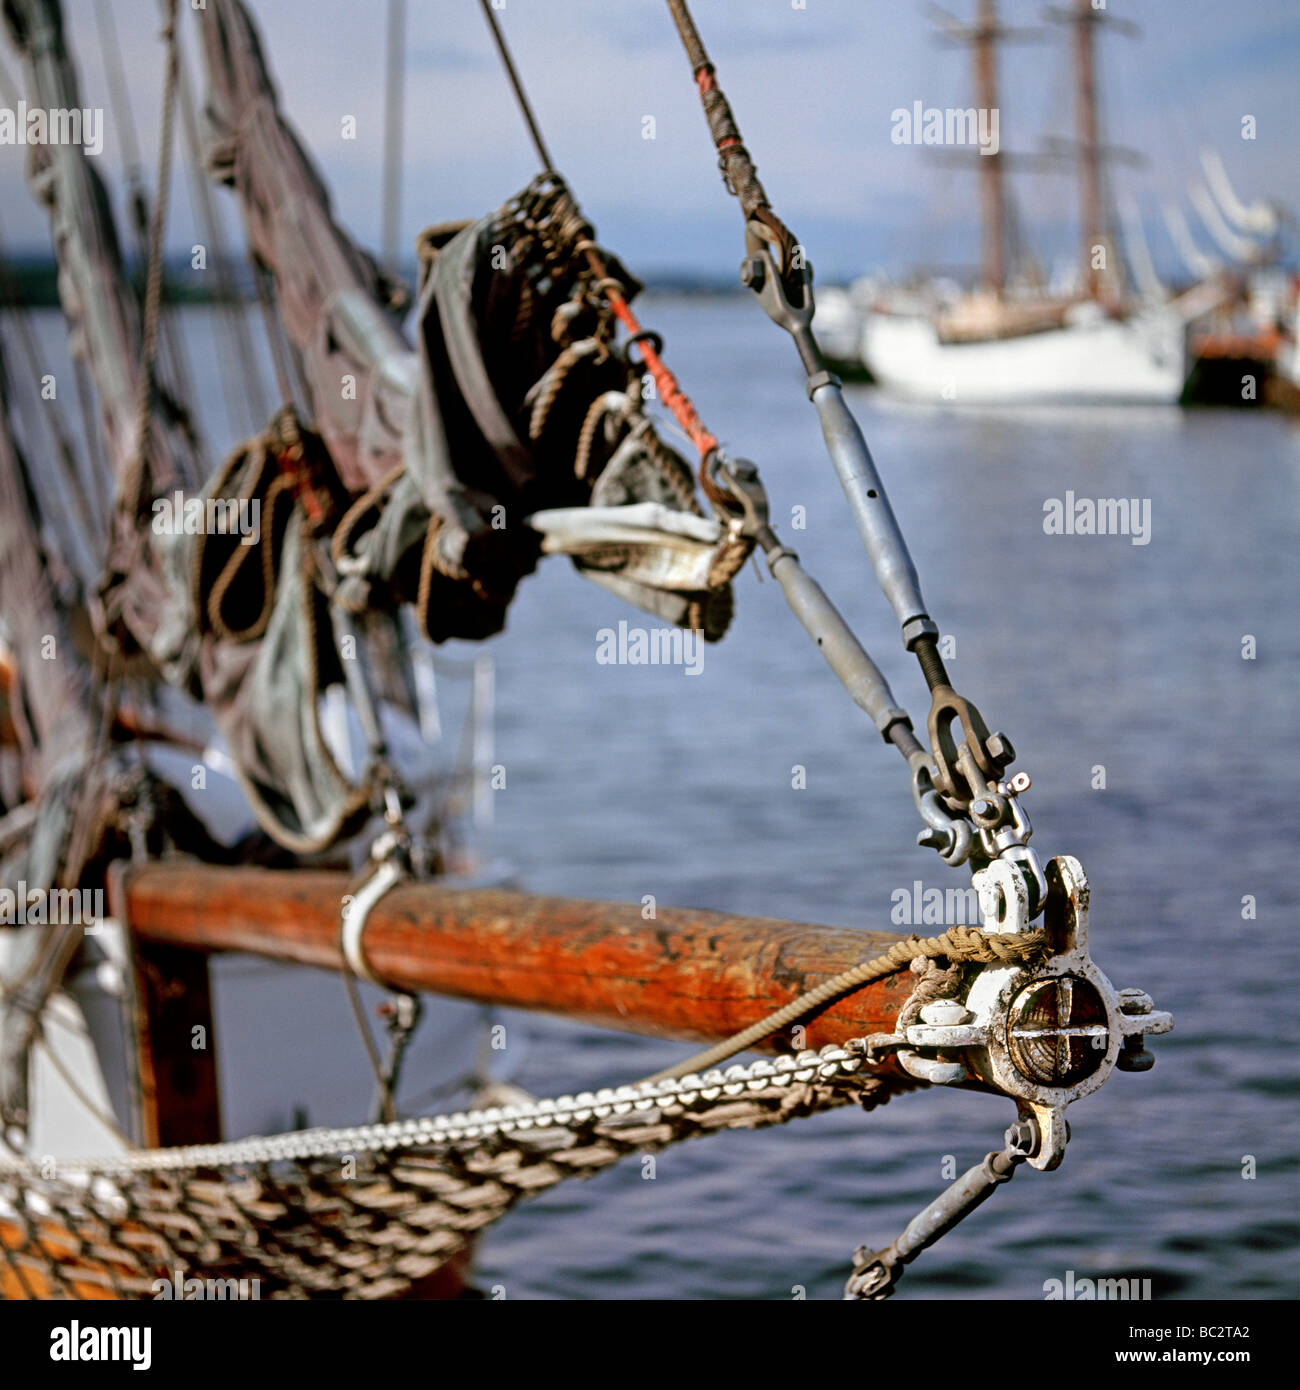 The close up of the tall ship's nose - Stock Image